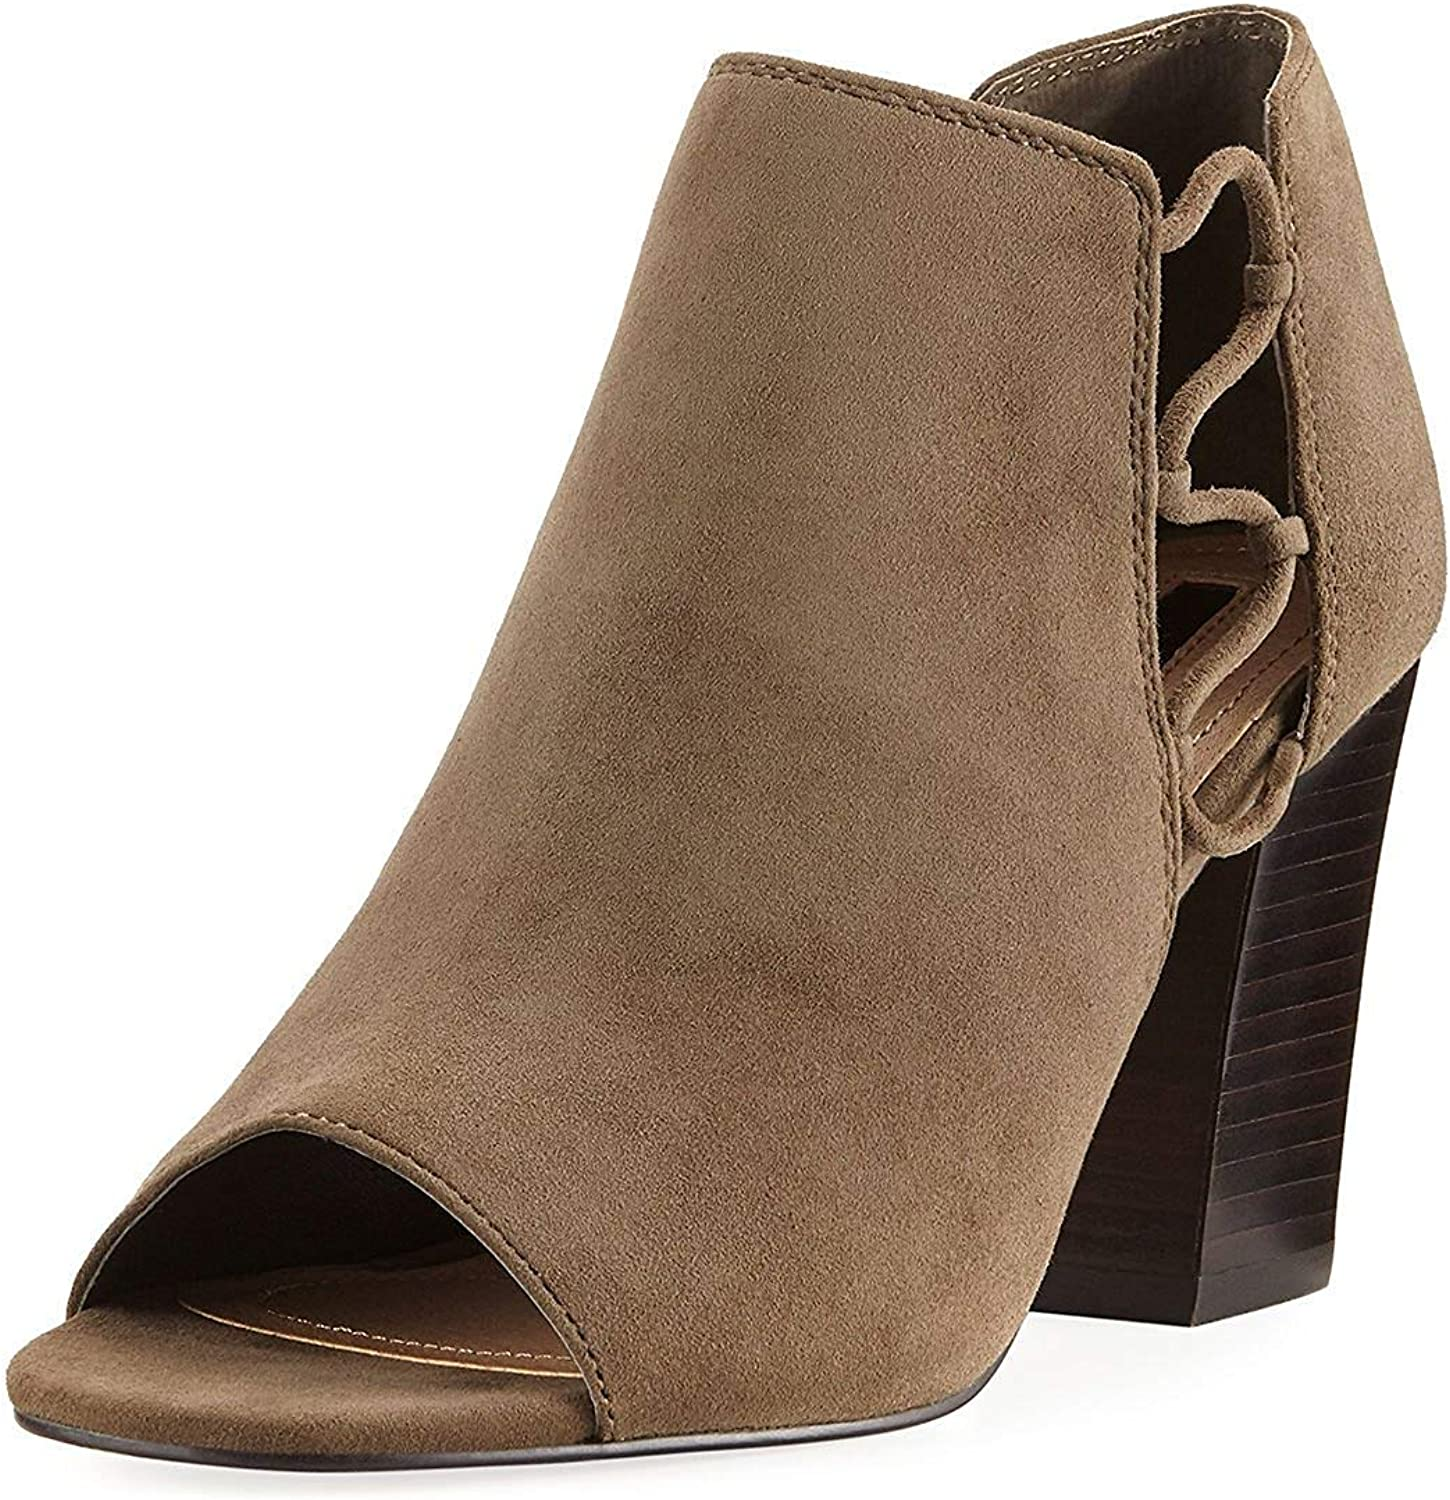 Tahari Women's Ta-Post Pump Bootie, Fawn, 6.5 M Us